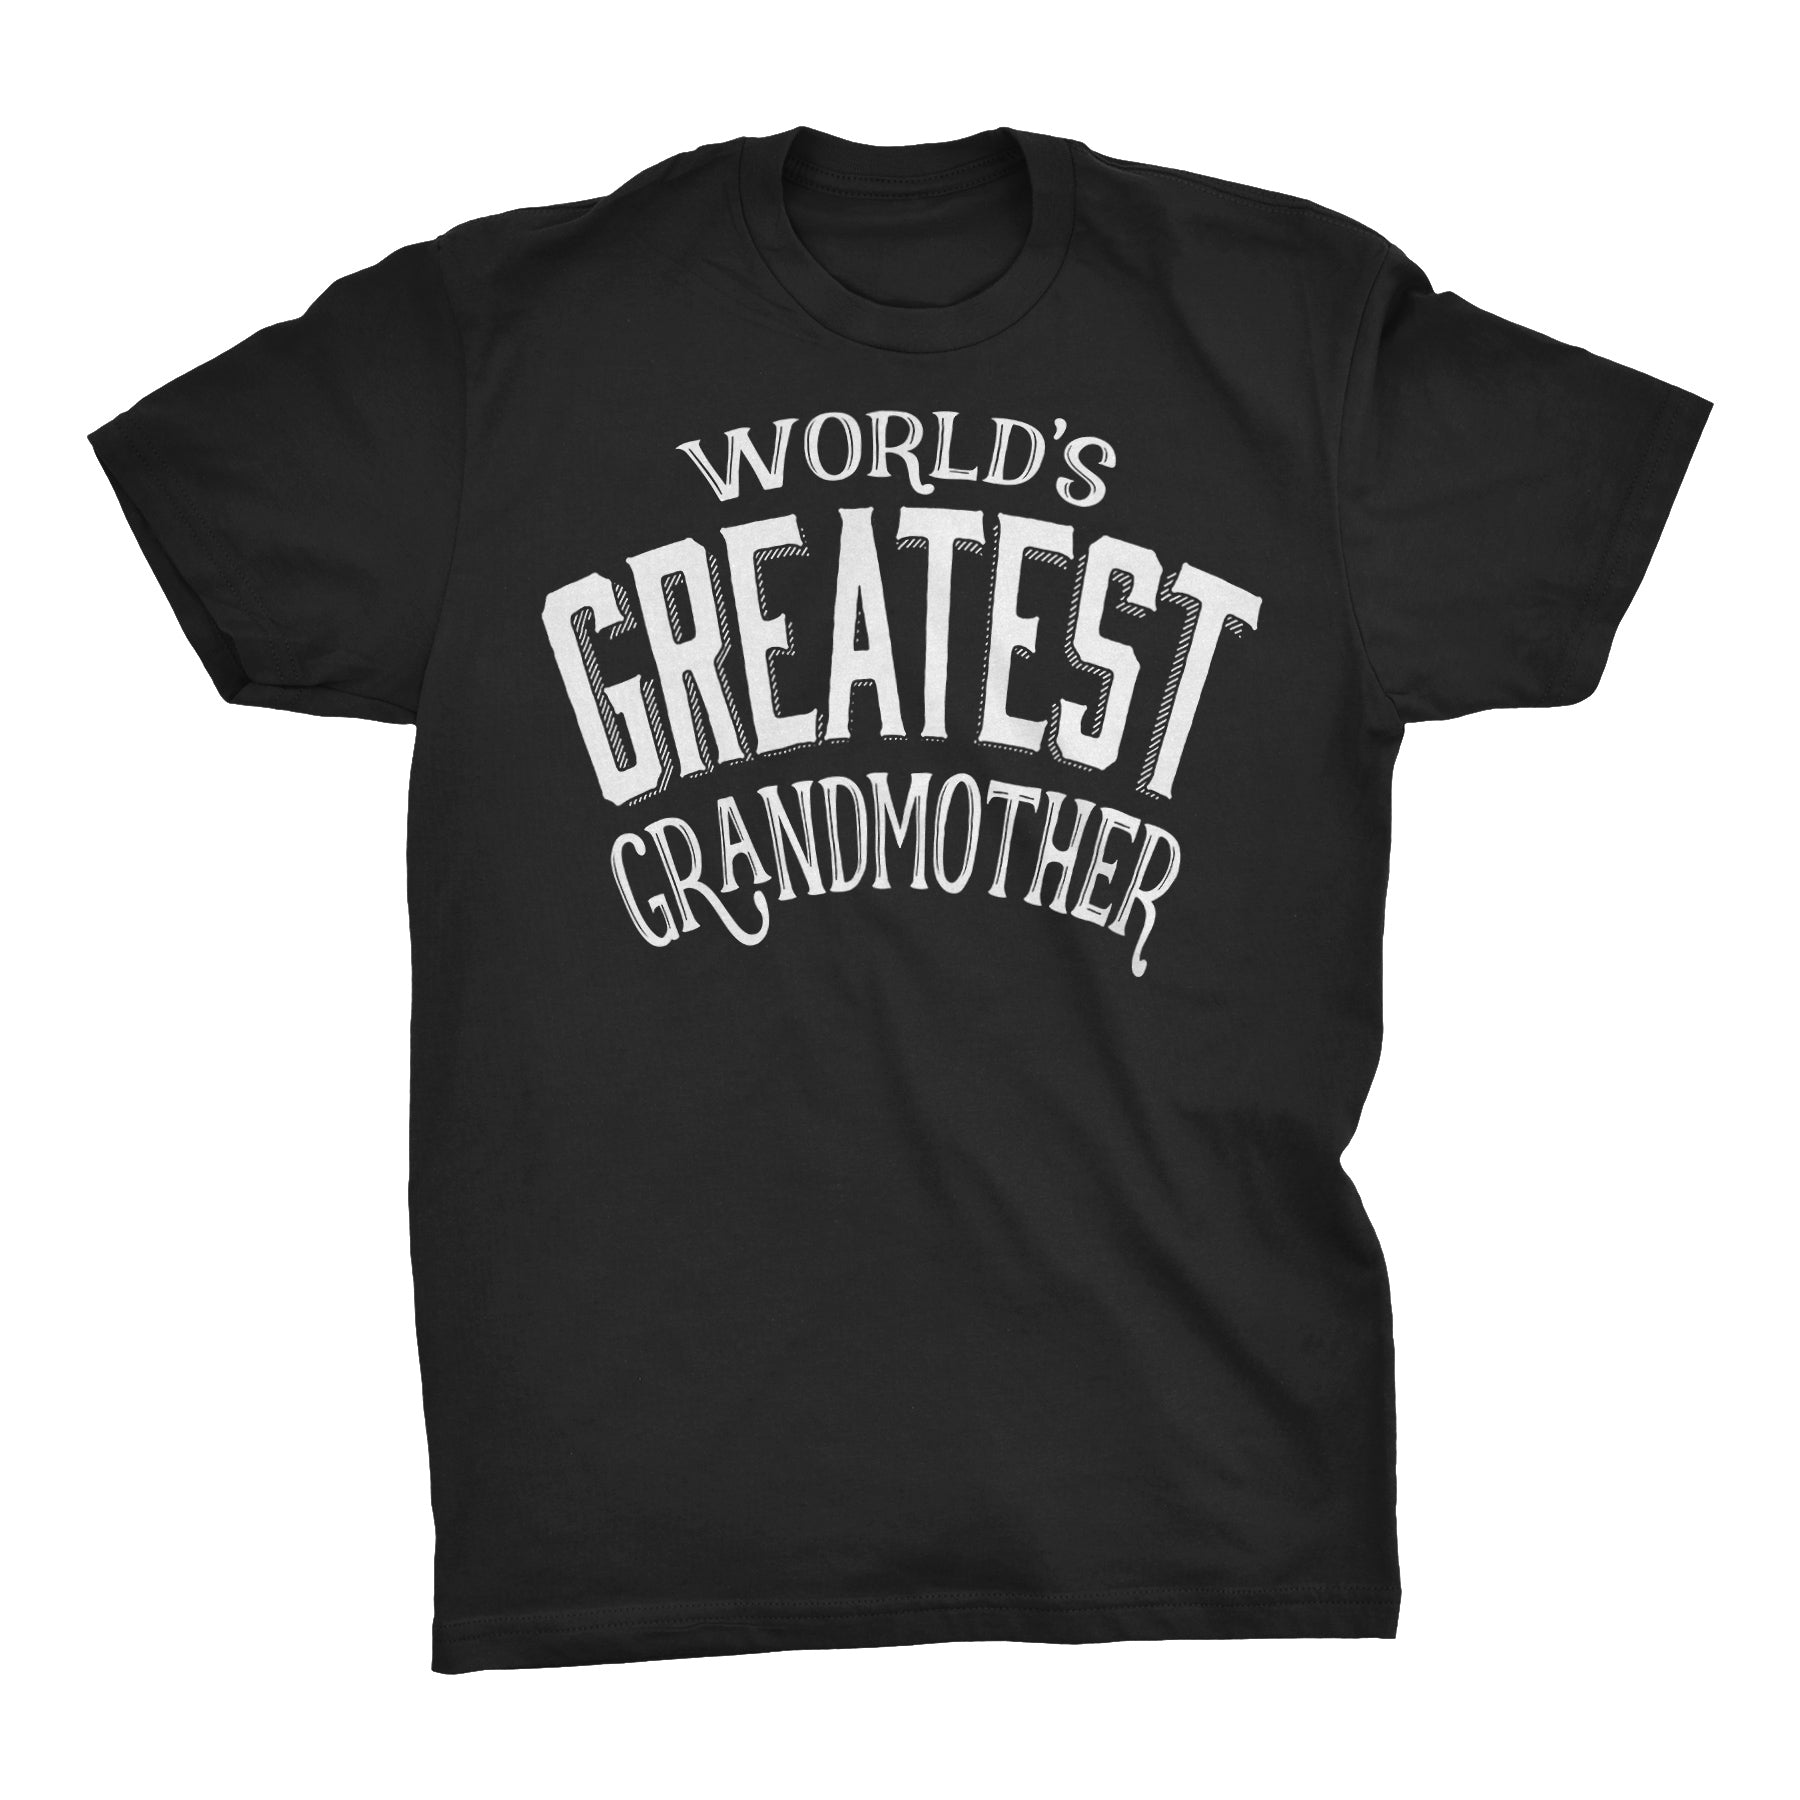 World's Greatest GRANDMOTHER - 001 Mother's Day Grandma Ladies Fit T-shirt